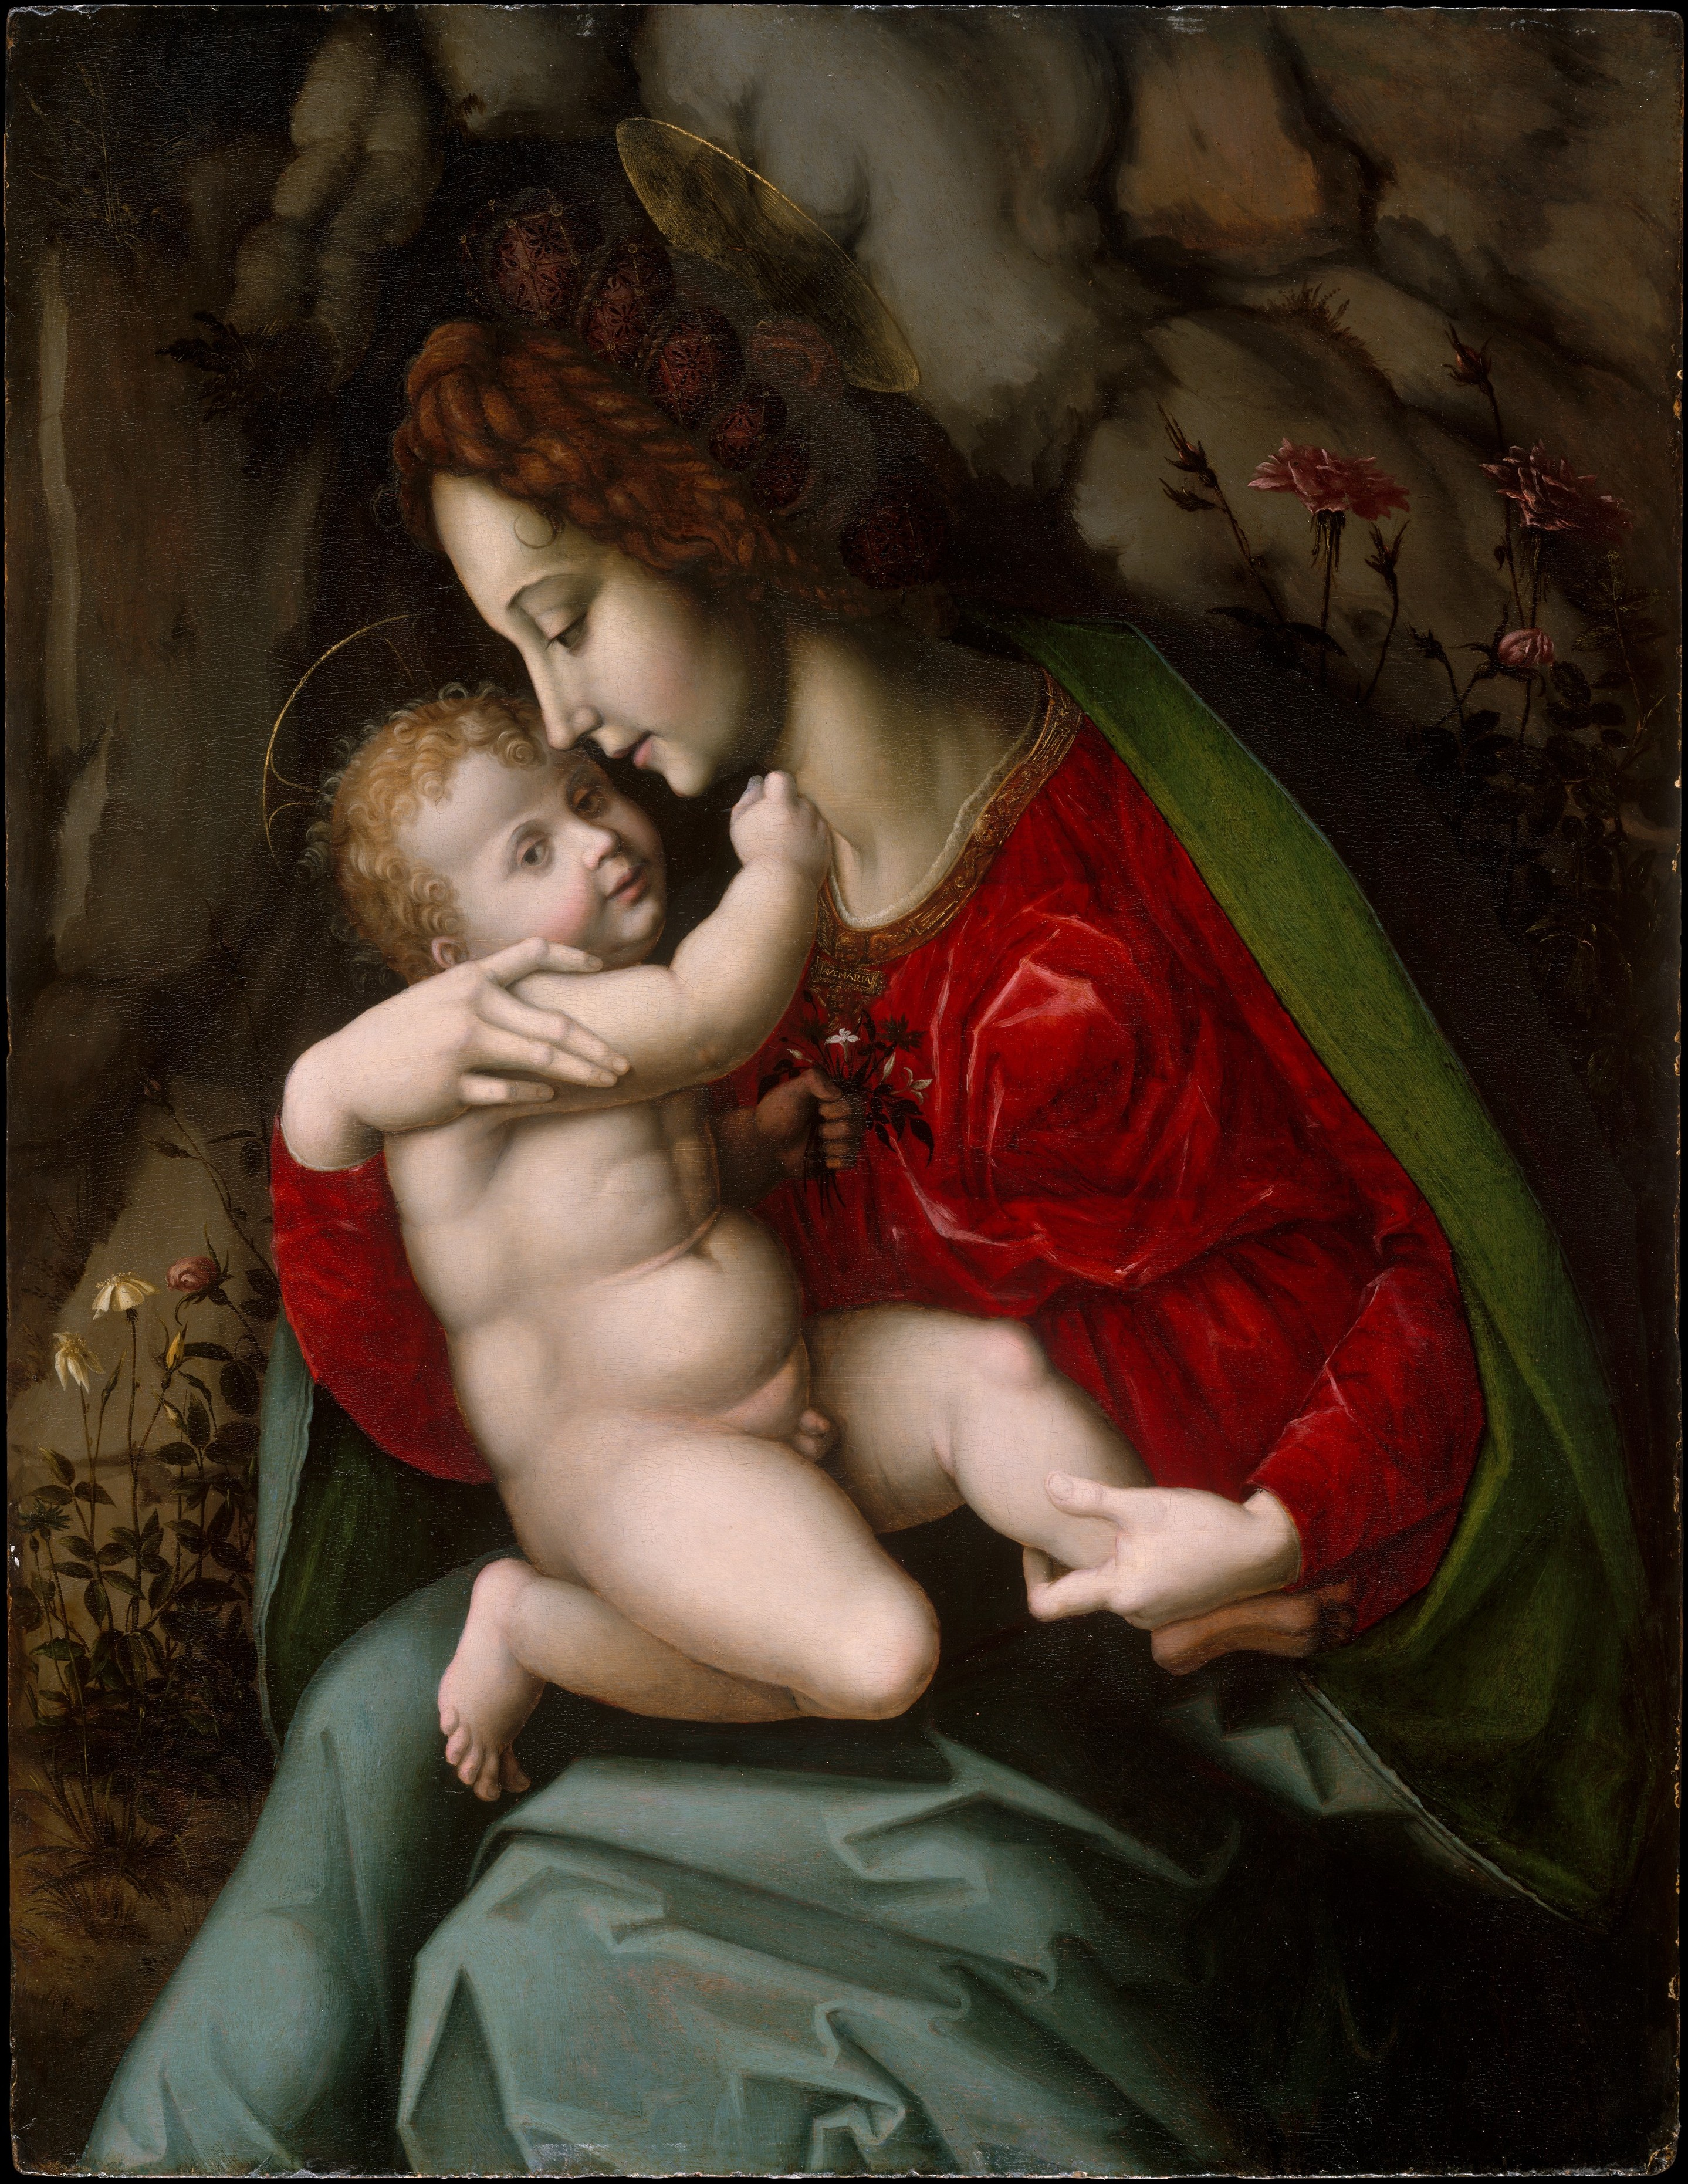 The 2018 U.S. Madonna and Child stamp (Scott #5331) features a detail of an oil-and-gold-on-panel painting by Italian Renaissance artist Francesco d'Ubertino Verdi (1494–1557), known as Bachiacca. Dating from the early 1520s, the painting is part of the Jack and Belle Linsky Collection at the Metropolitan Museum of Art in New York City. William J. Gicker served as art director for this stamp, and Greg Breeding was the designer. The first day of issue ceremonies were held on October 3 in Santa Fe, New Mexico.